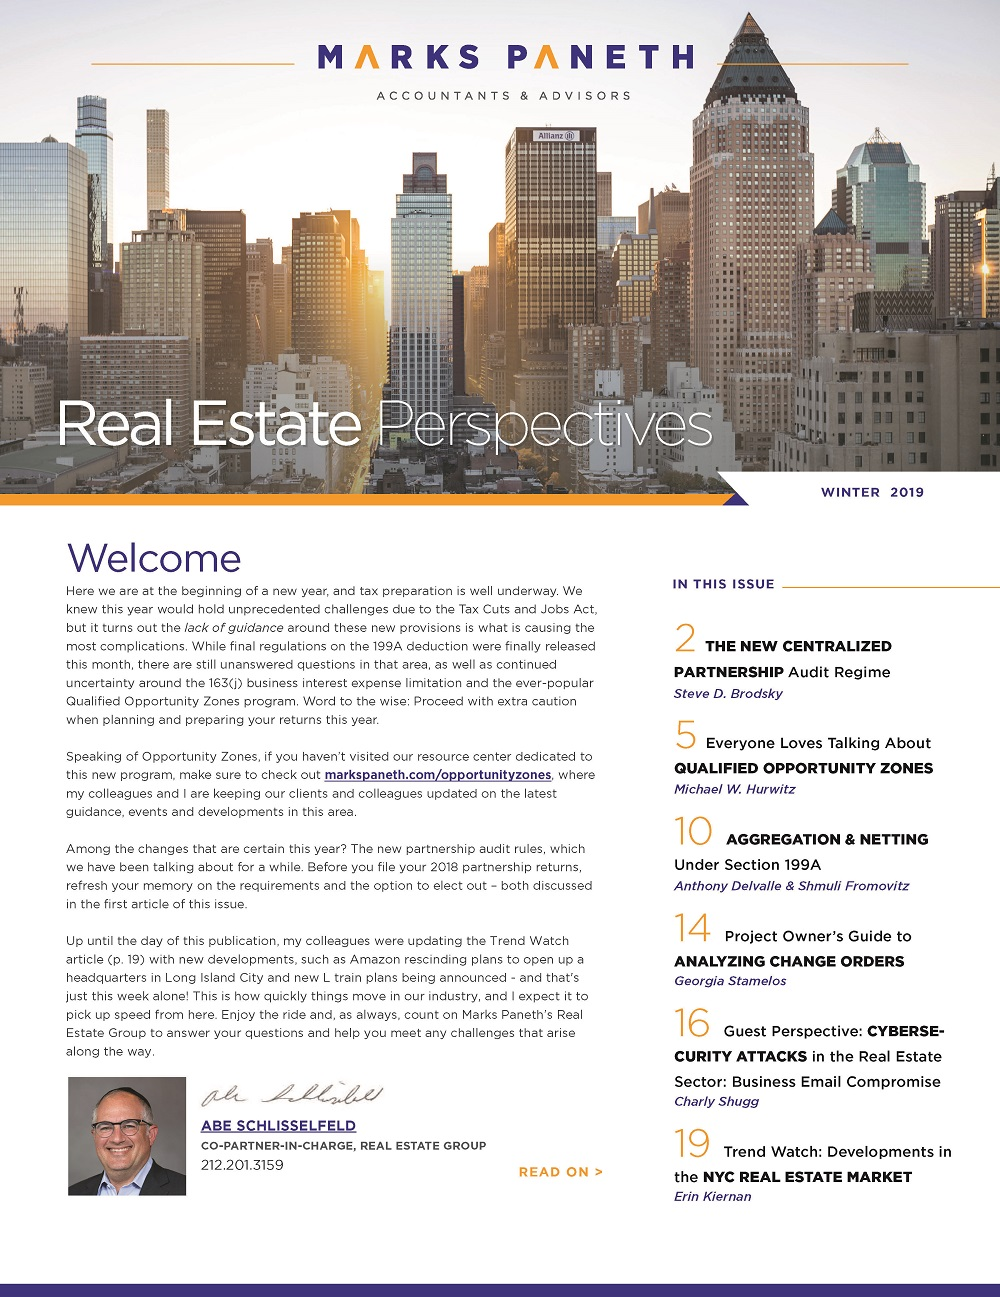 Real Estate Perspectives, Winter 2019